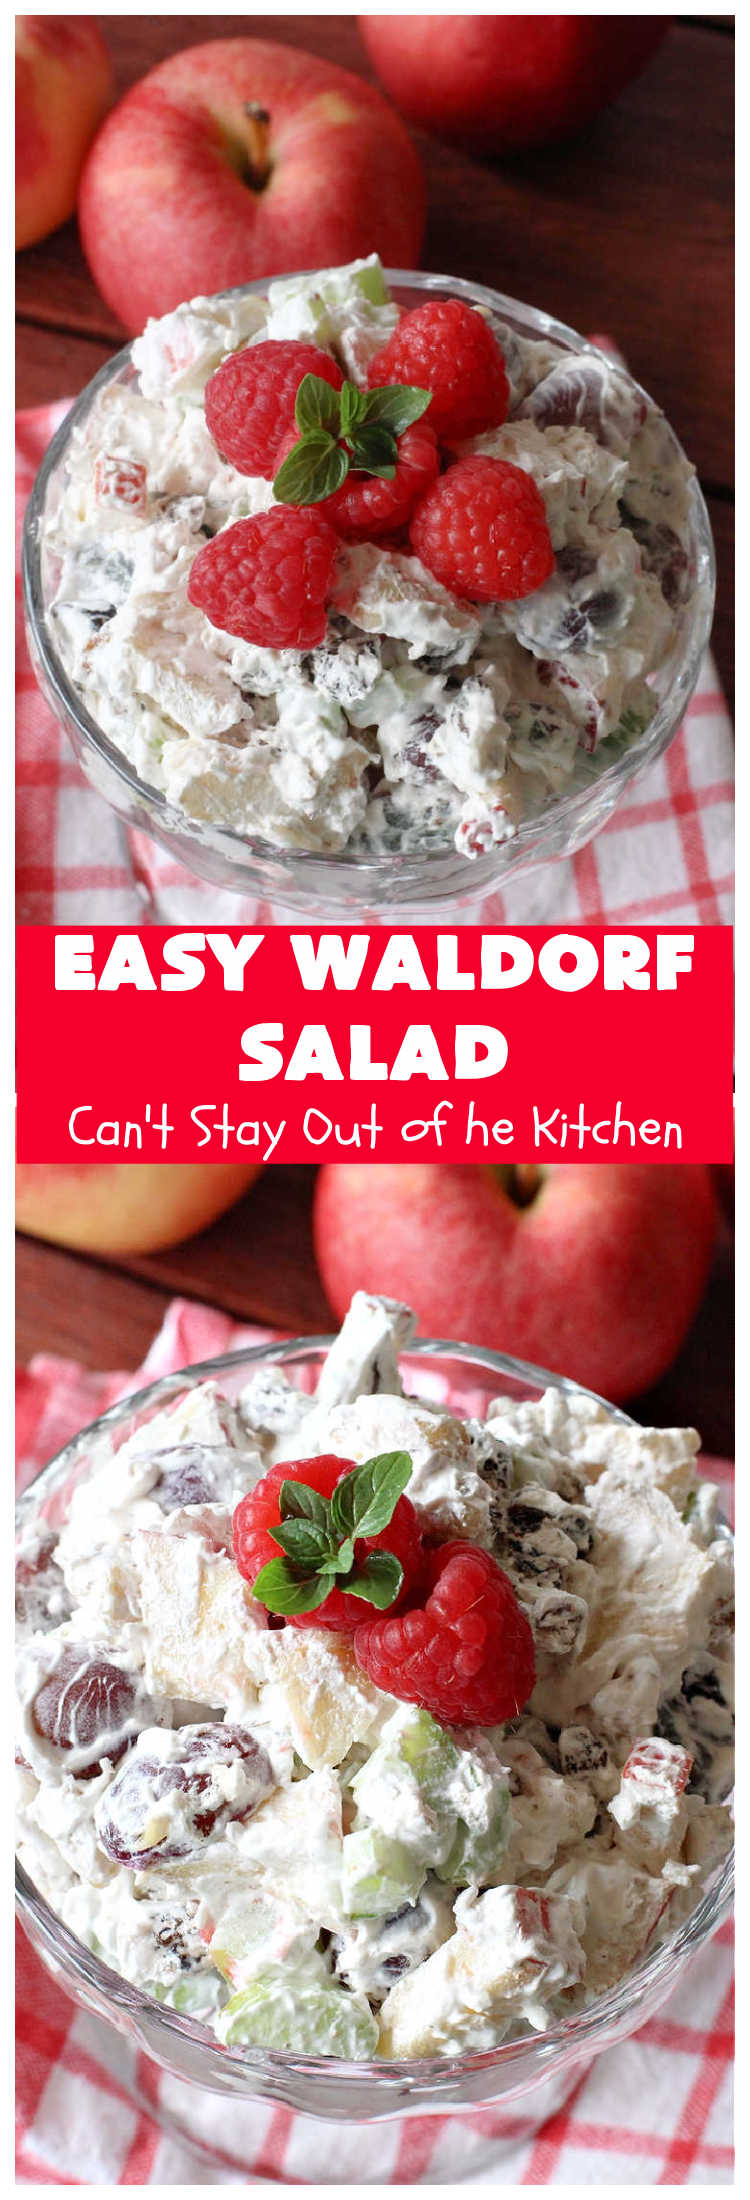 Easy Waldorf Salad   Can't Stay Out of the Kitchen   this luscious #GooseberryPatch #recipe uses #apples, #raisins, #grapes, #celery & #walnuts. This is the perfect #FruitSalad for #summer & #holiday menus. It can be prepared in under 10 minutes. #salad #WaldorfSalad #EasyWaldorfSalad #GlutenFree #HolidaySideDish